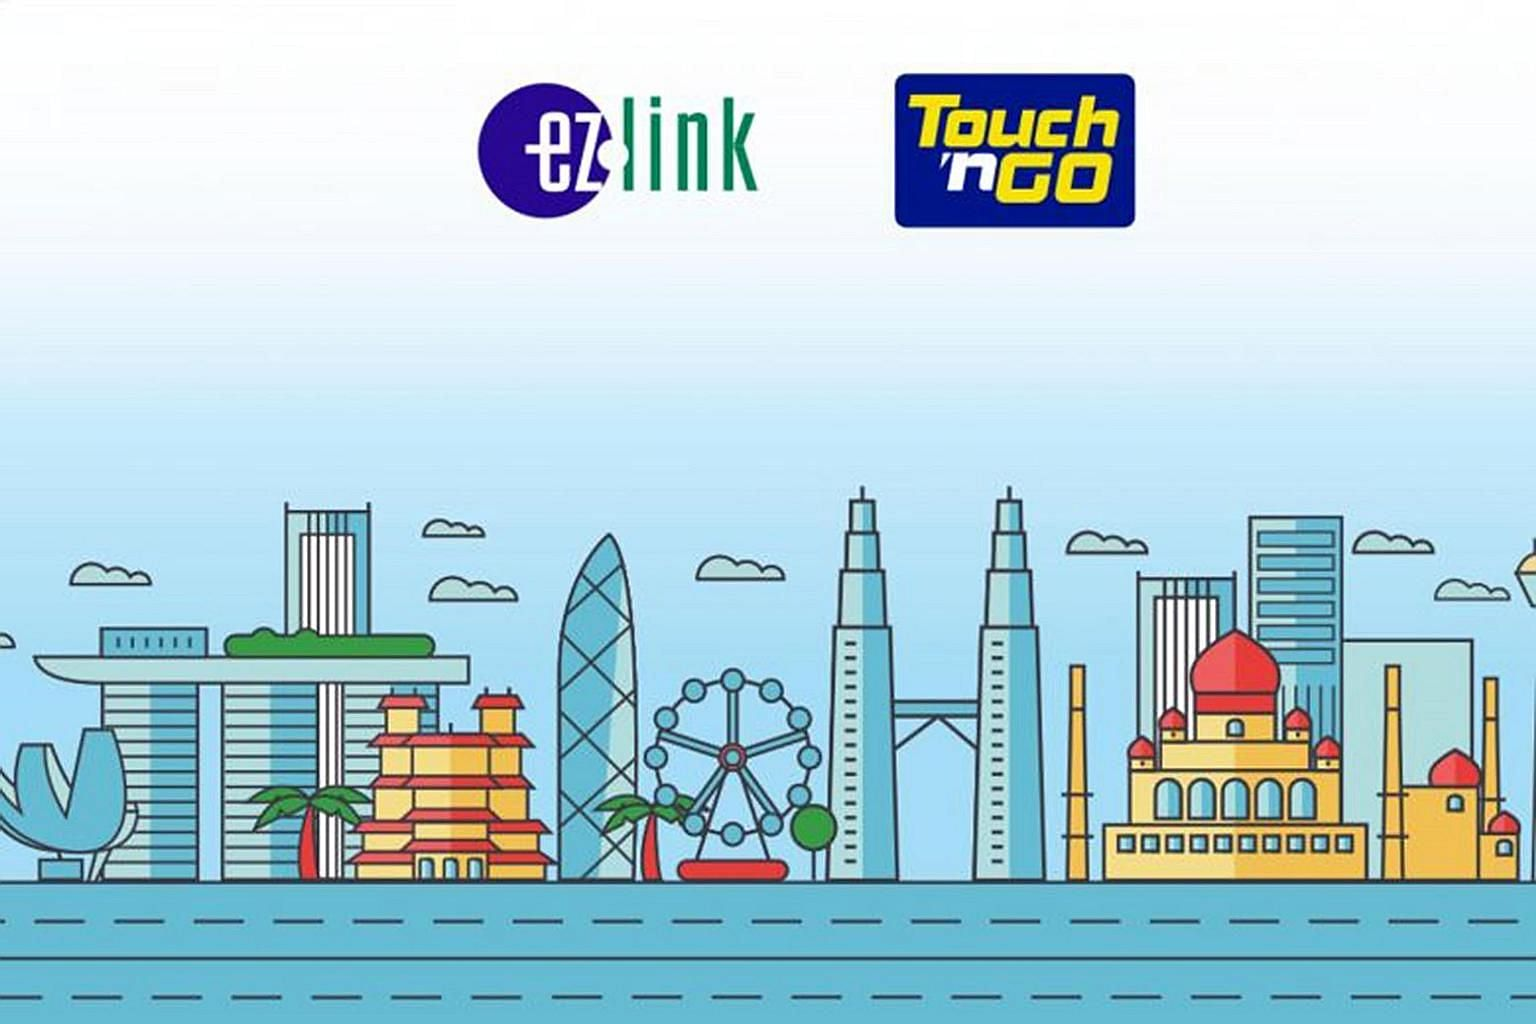 The Combi Card will securely host both electronic wallets from EZ-Link and Touch 'n Go, said the two companies.